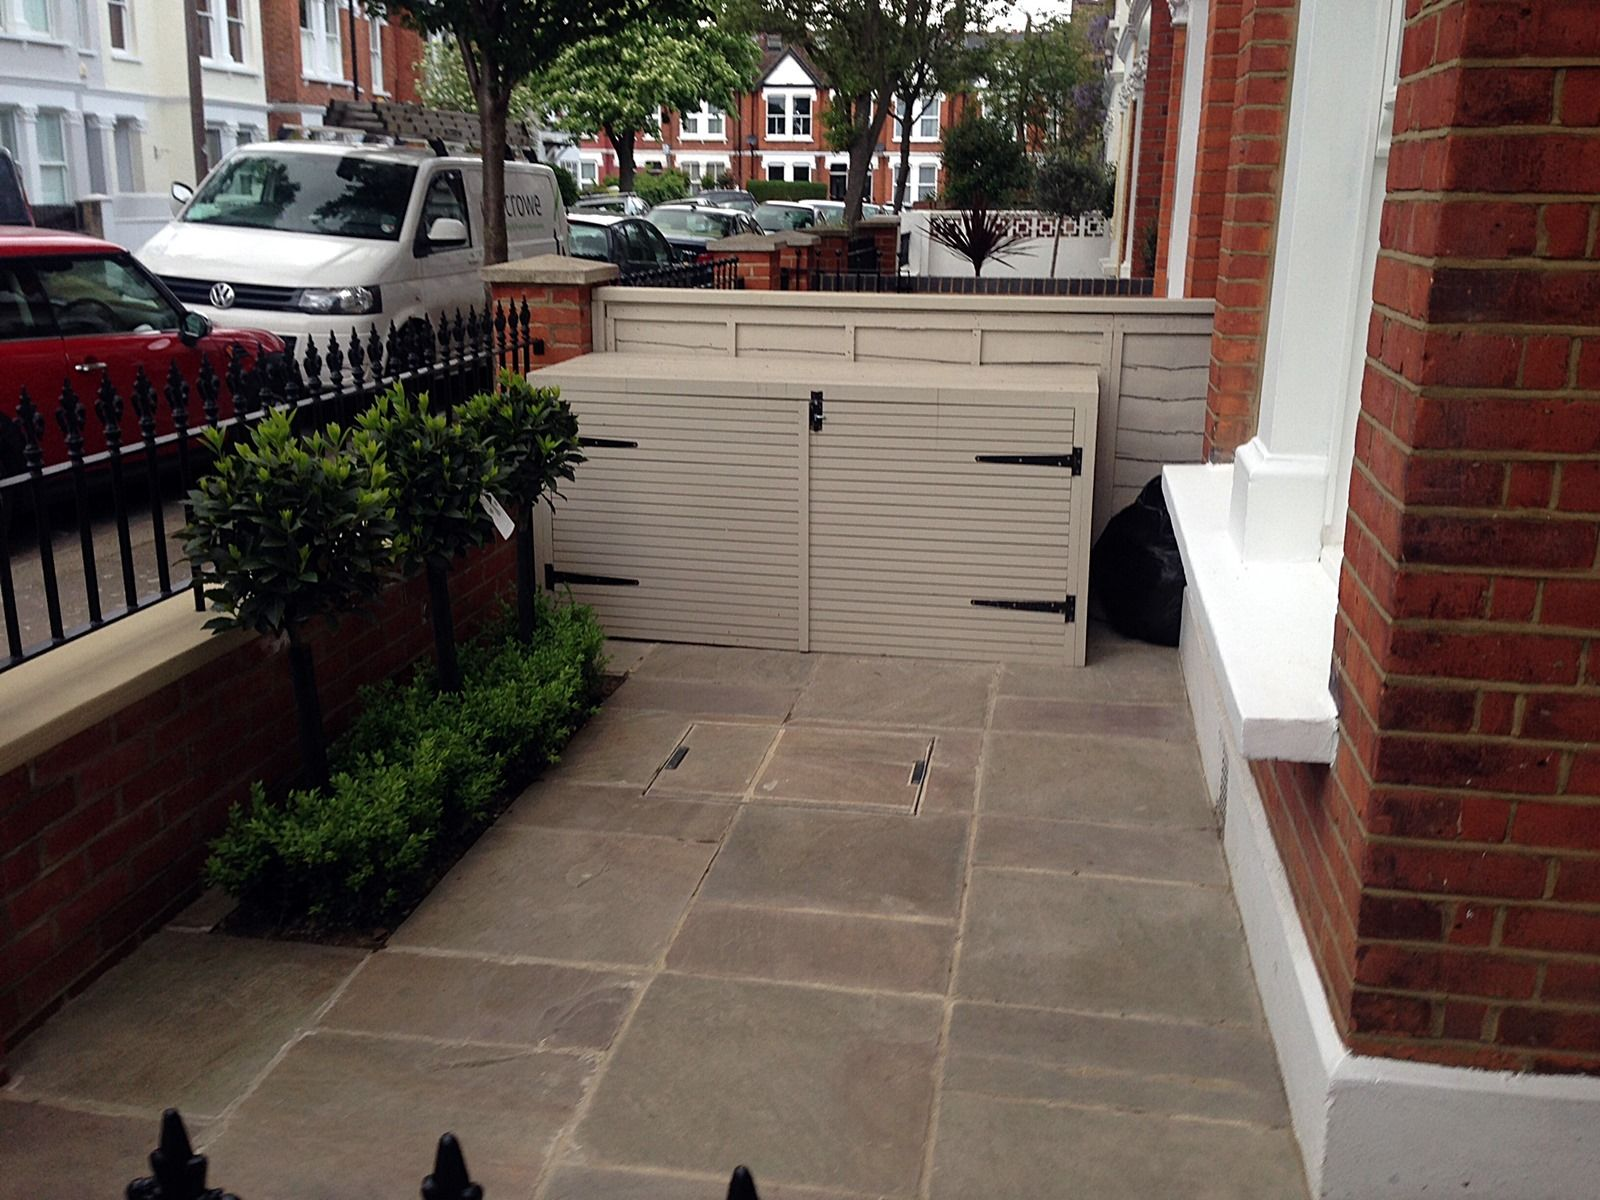 red-brick-front-garden-wall-yellow-stone-caps-sandstone-paving